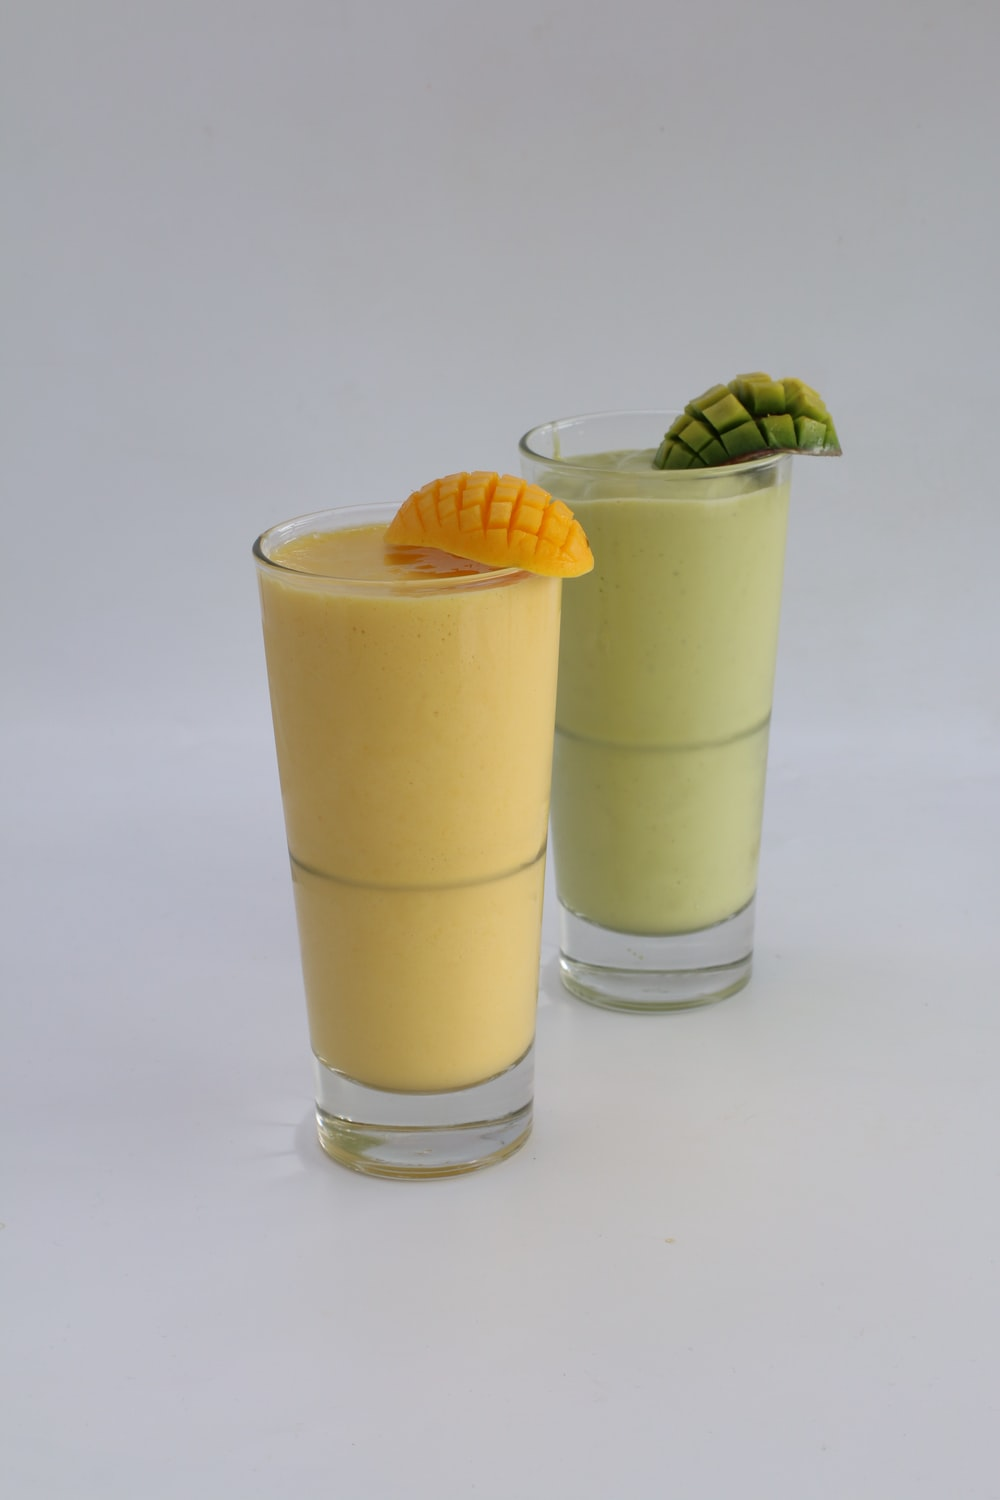 2 clear drinking glasses with yellow liquid